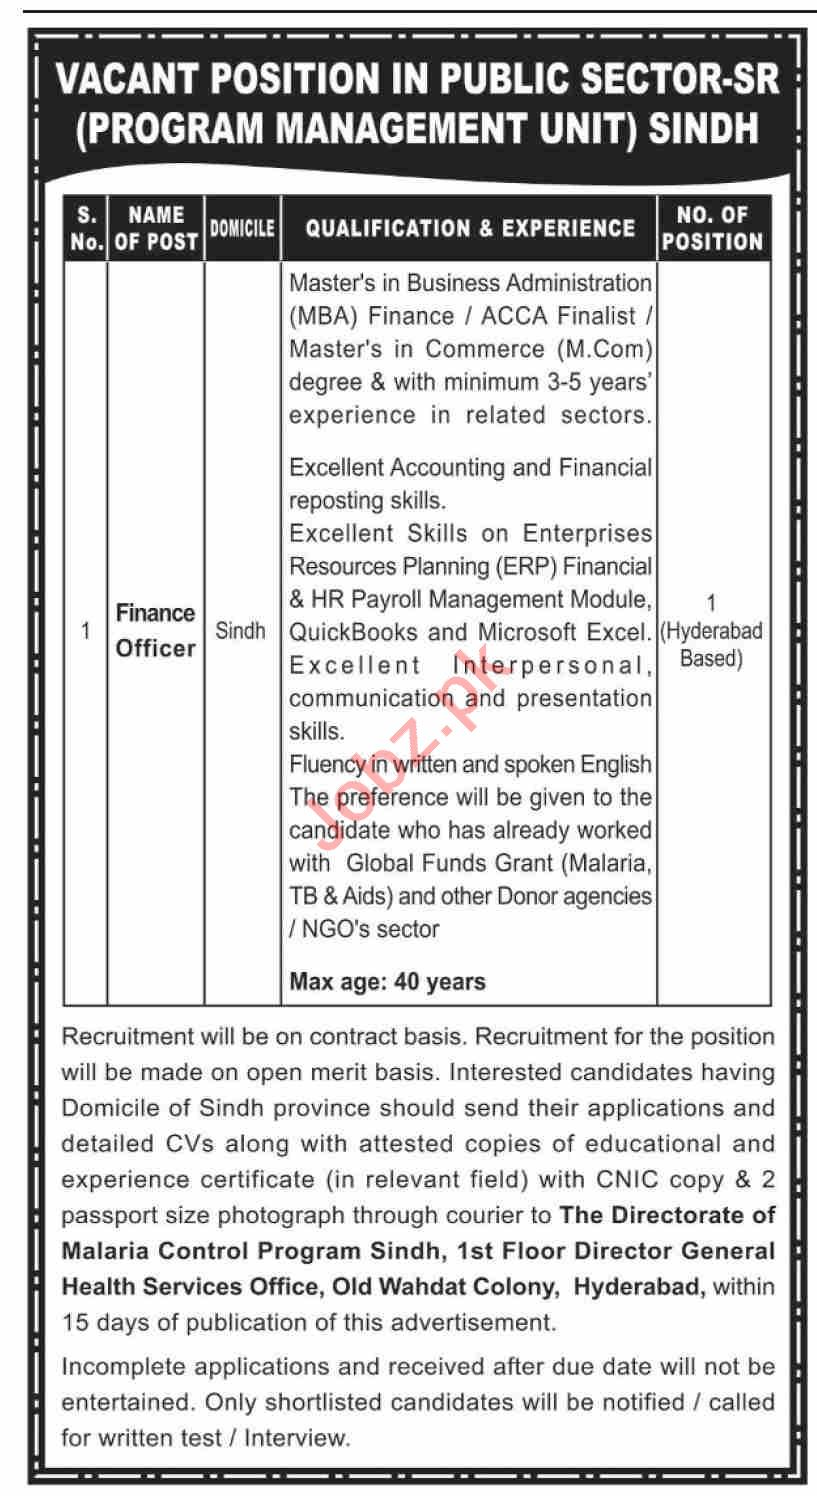 Malaria Control Program Sindh Jobs 2020 for Finance Officer